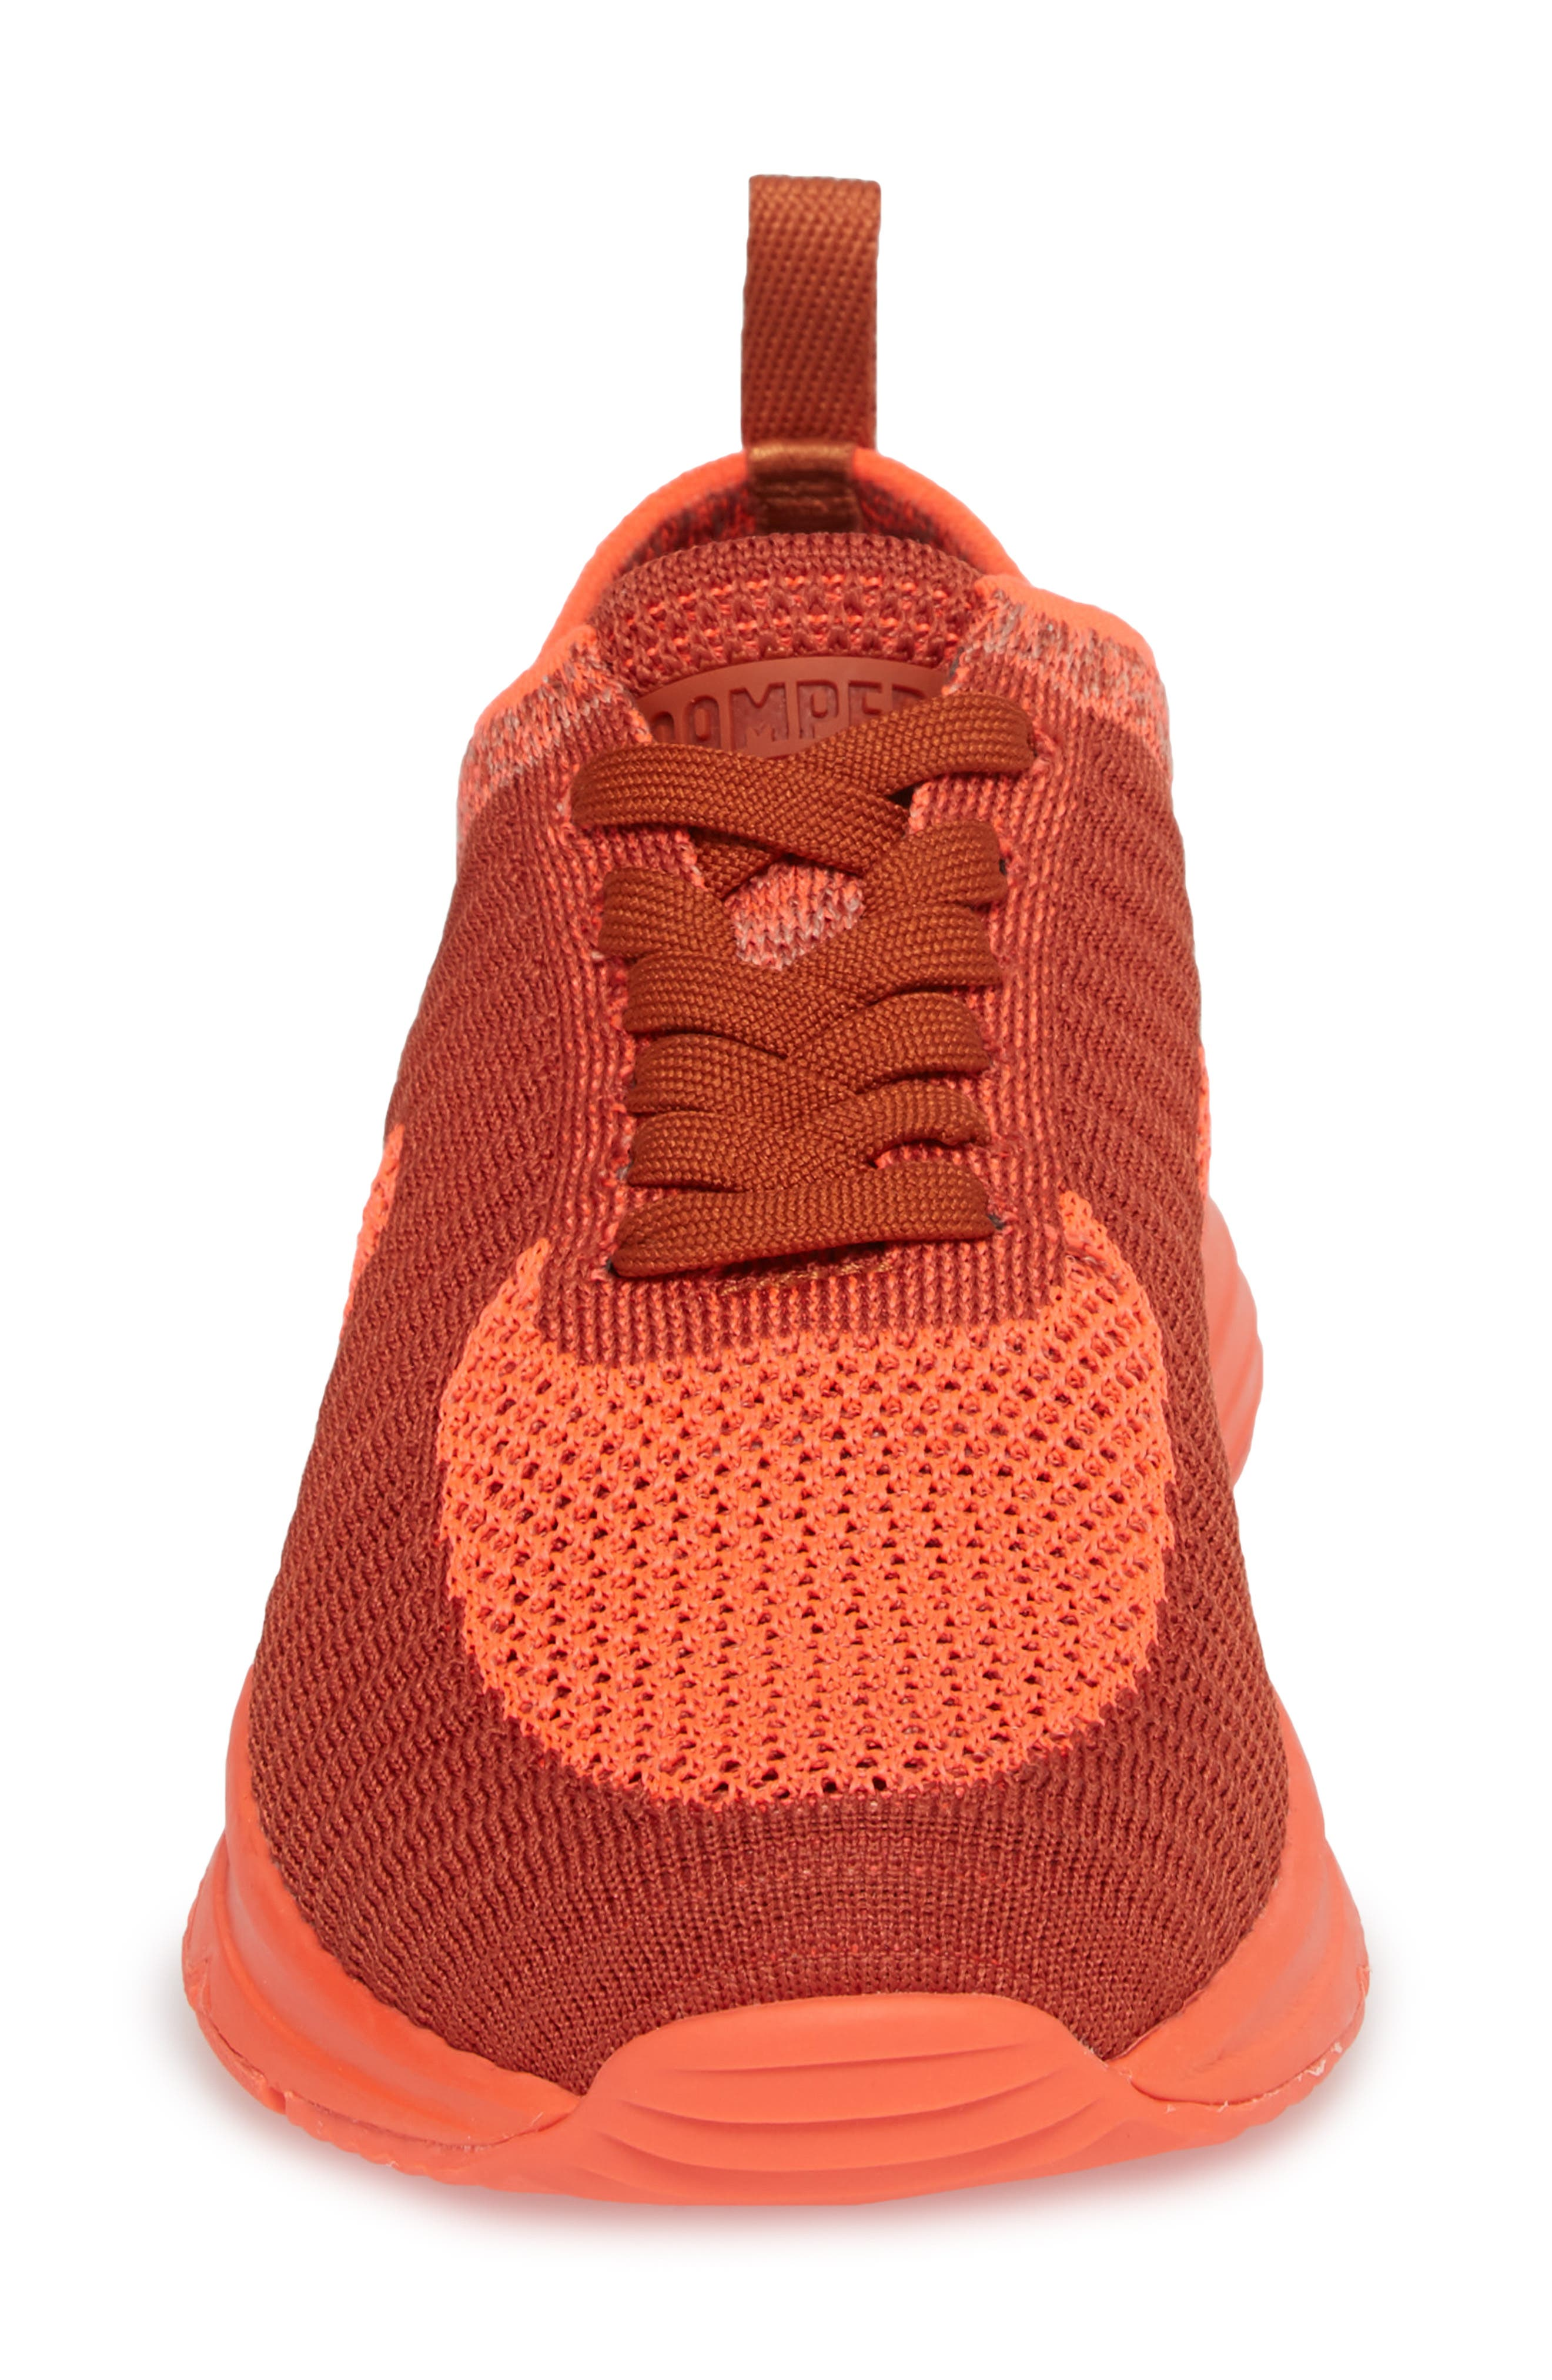 Drift Knit Sneaker,                             Alternate thumbnail 4, color,                             RED - ASSORTED FABRIC